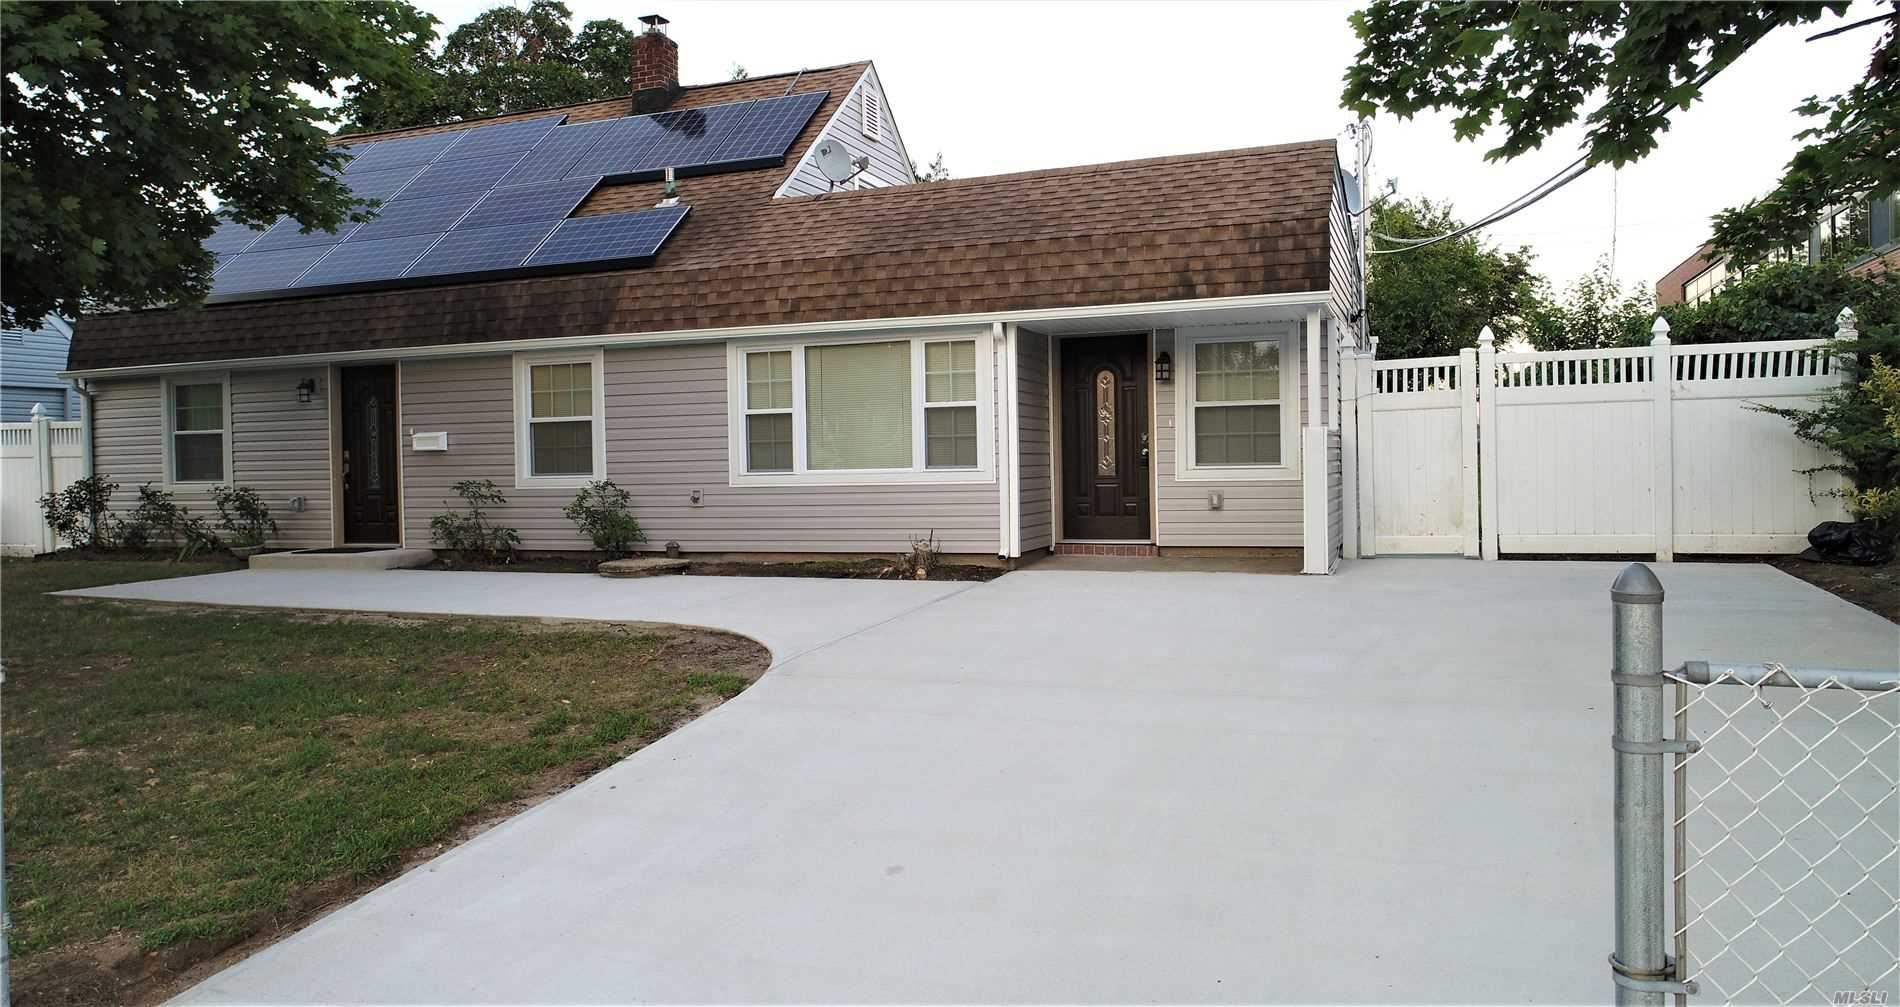 214 Division Ave Avenue, Levittown, NY 11756 - MLS#: 3231786